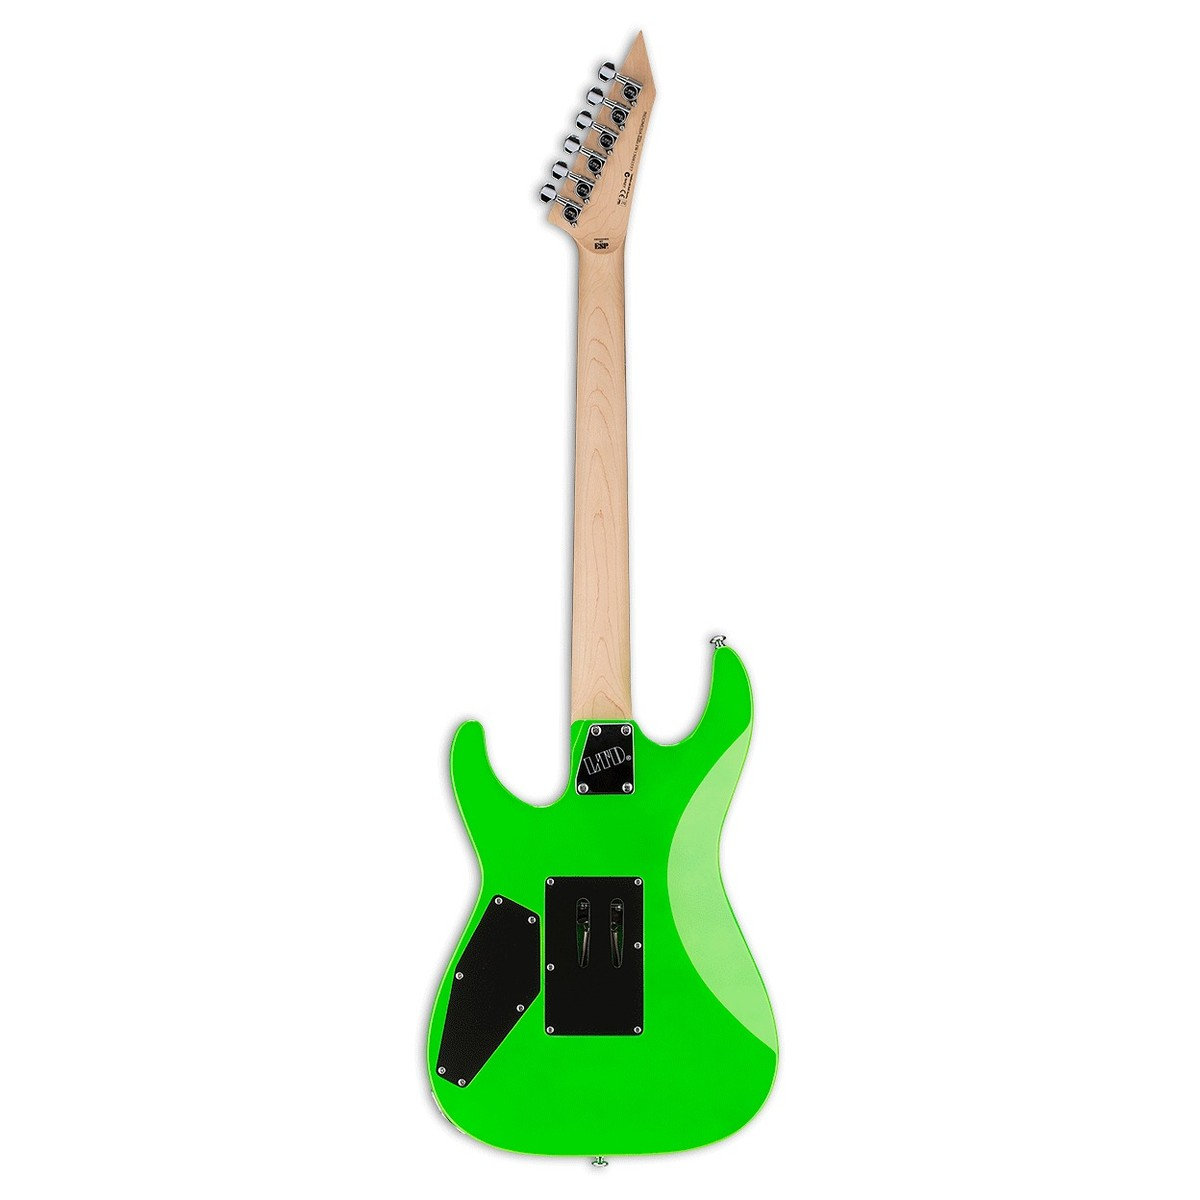 black neon electric guitar - photo #28